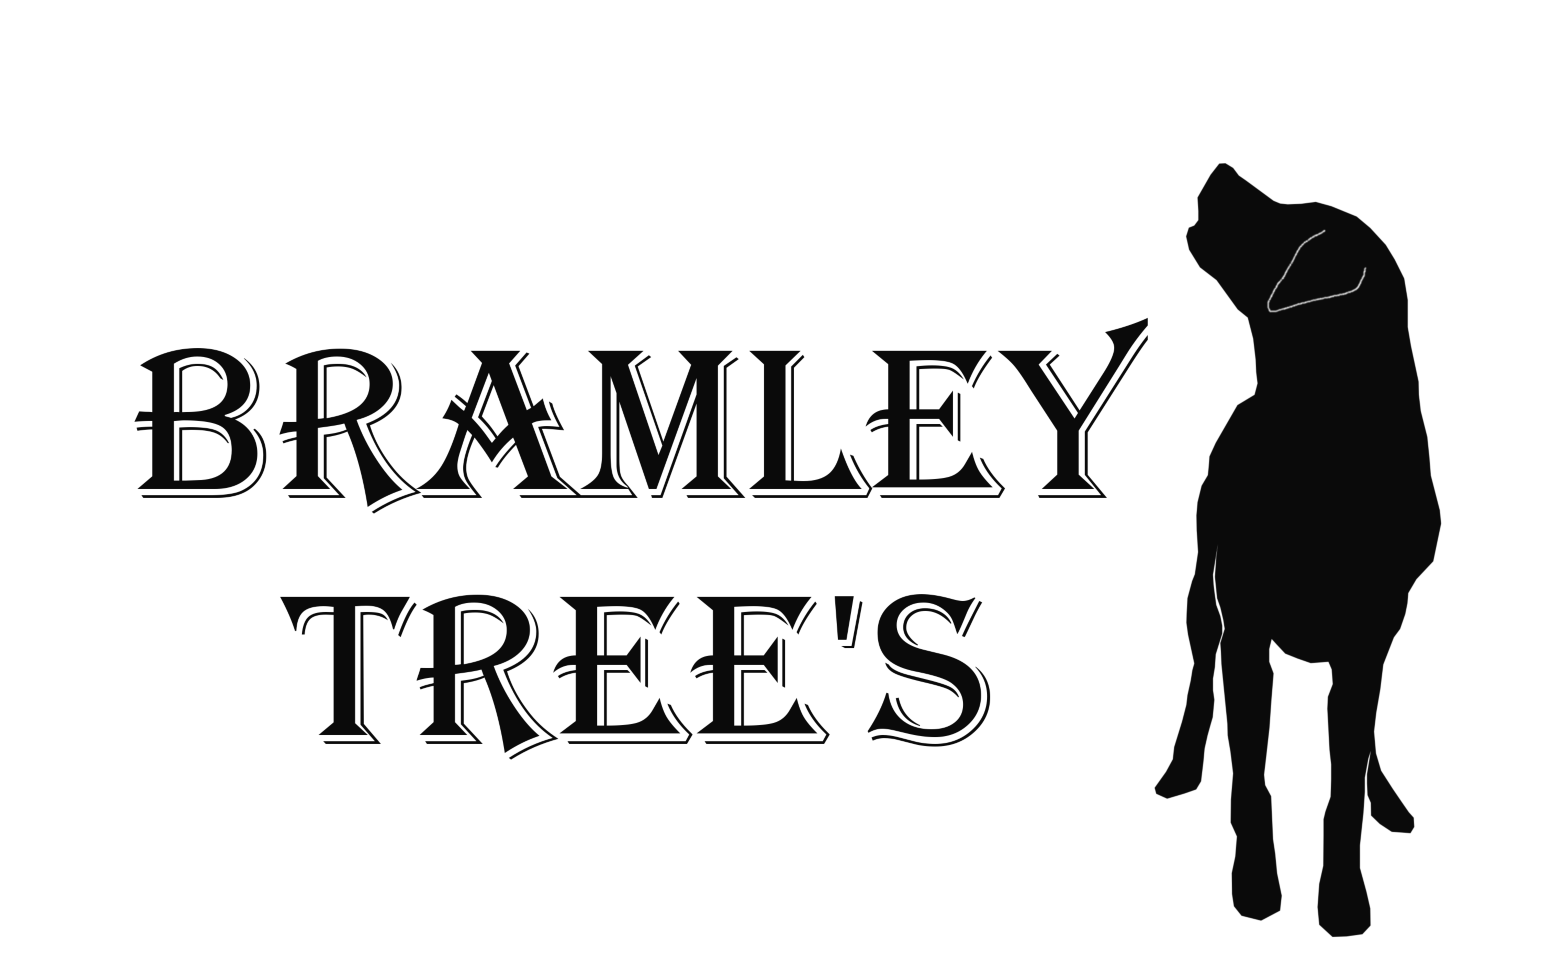 Bramley tree's Logo